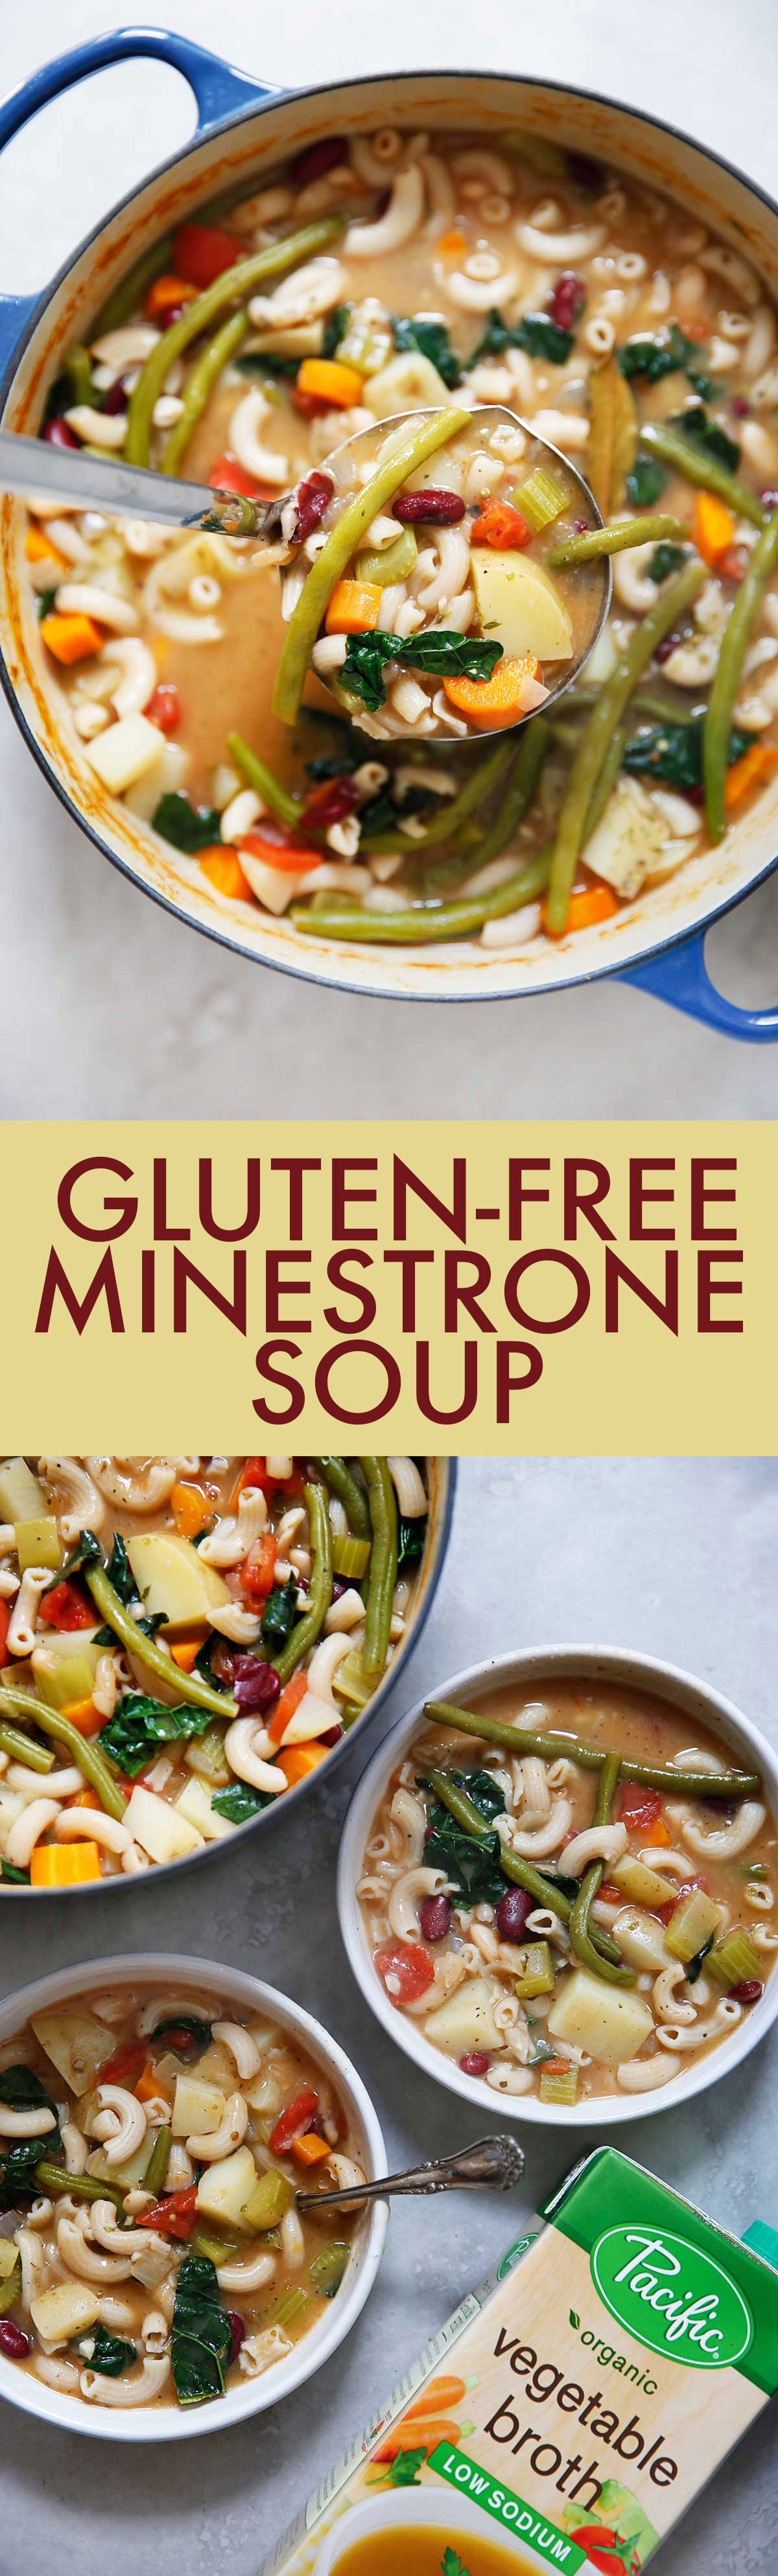 Gluten-Free Minestrone Soup - Lexi's Clean Kitchen